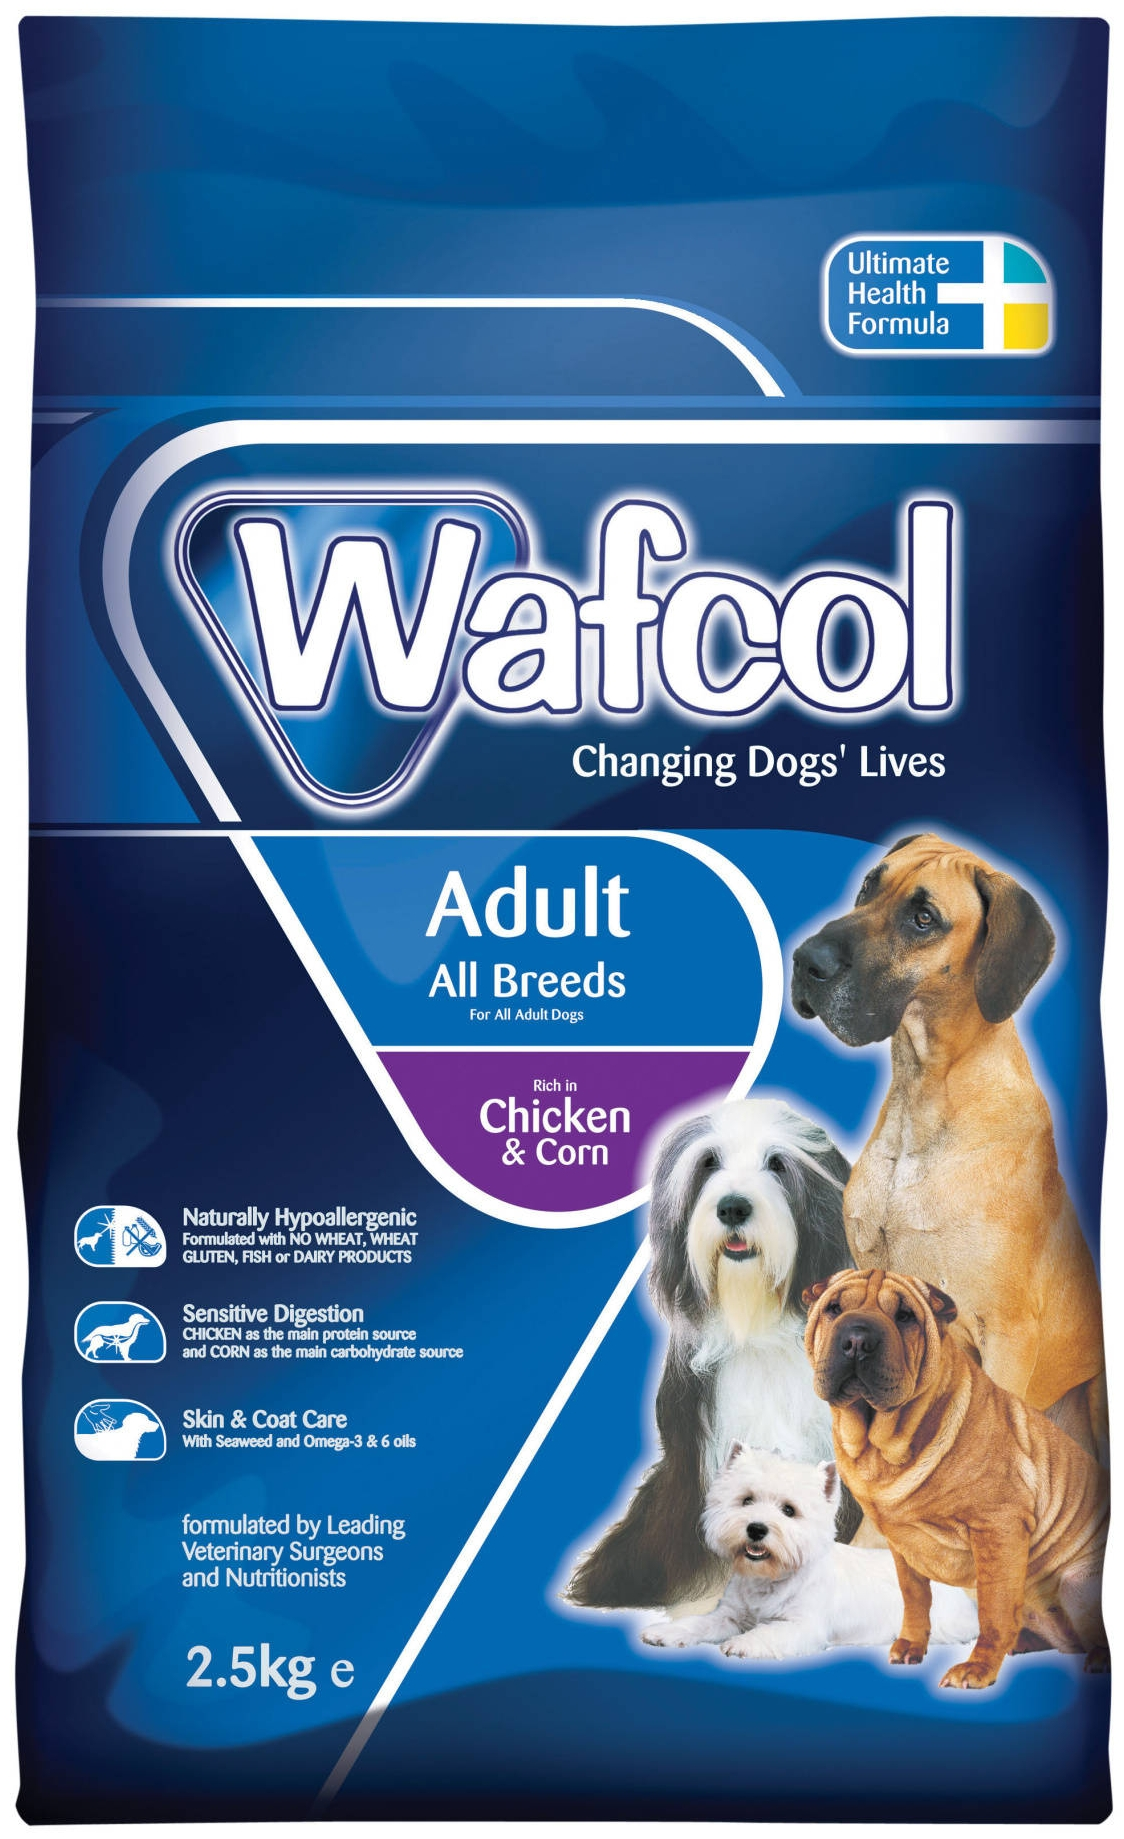 Wafcol Super Premium Adult Dog Food